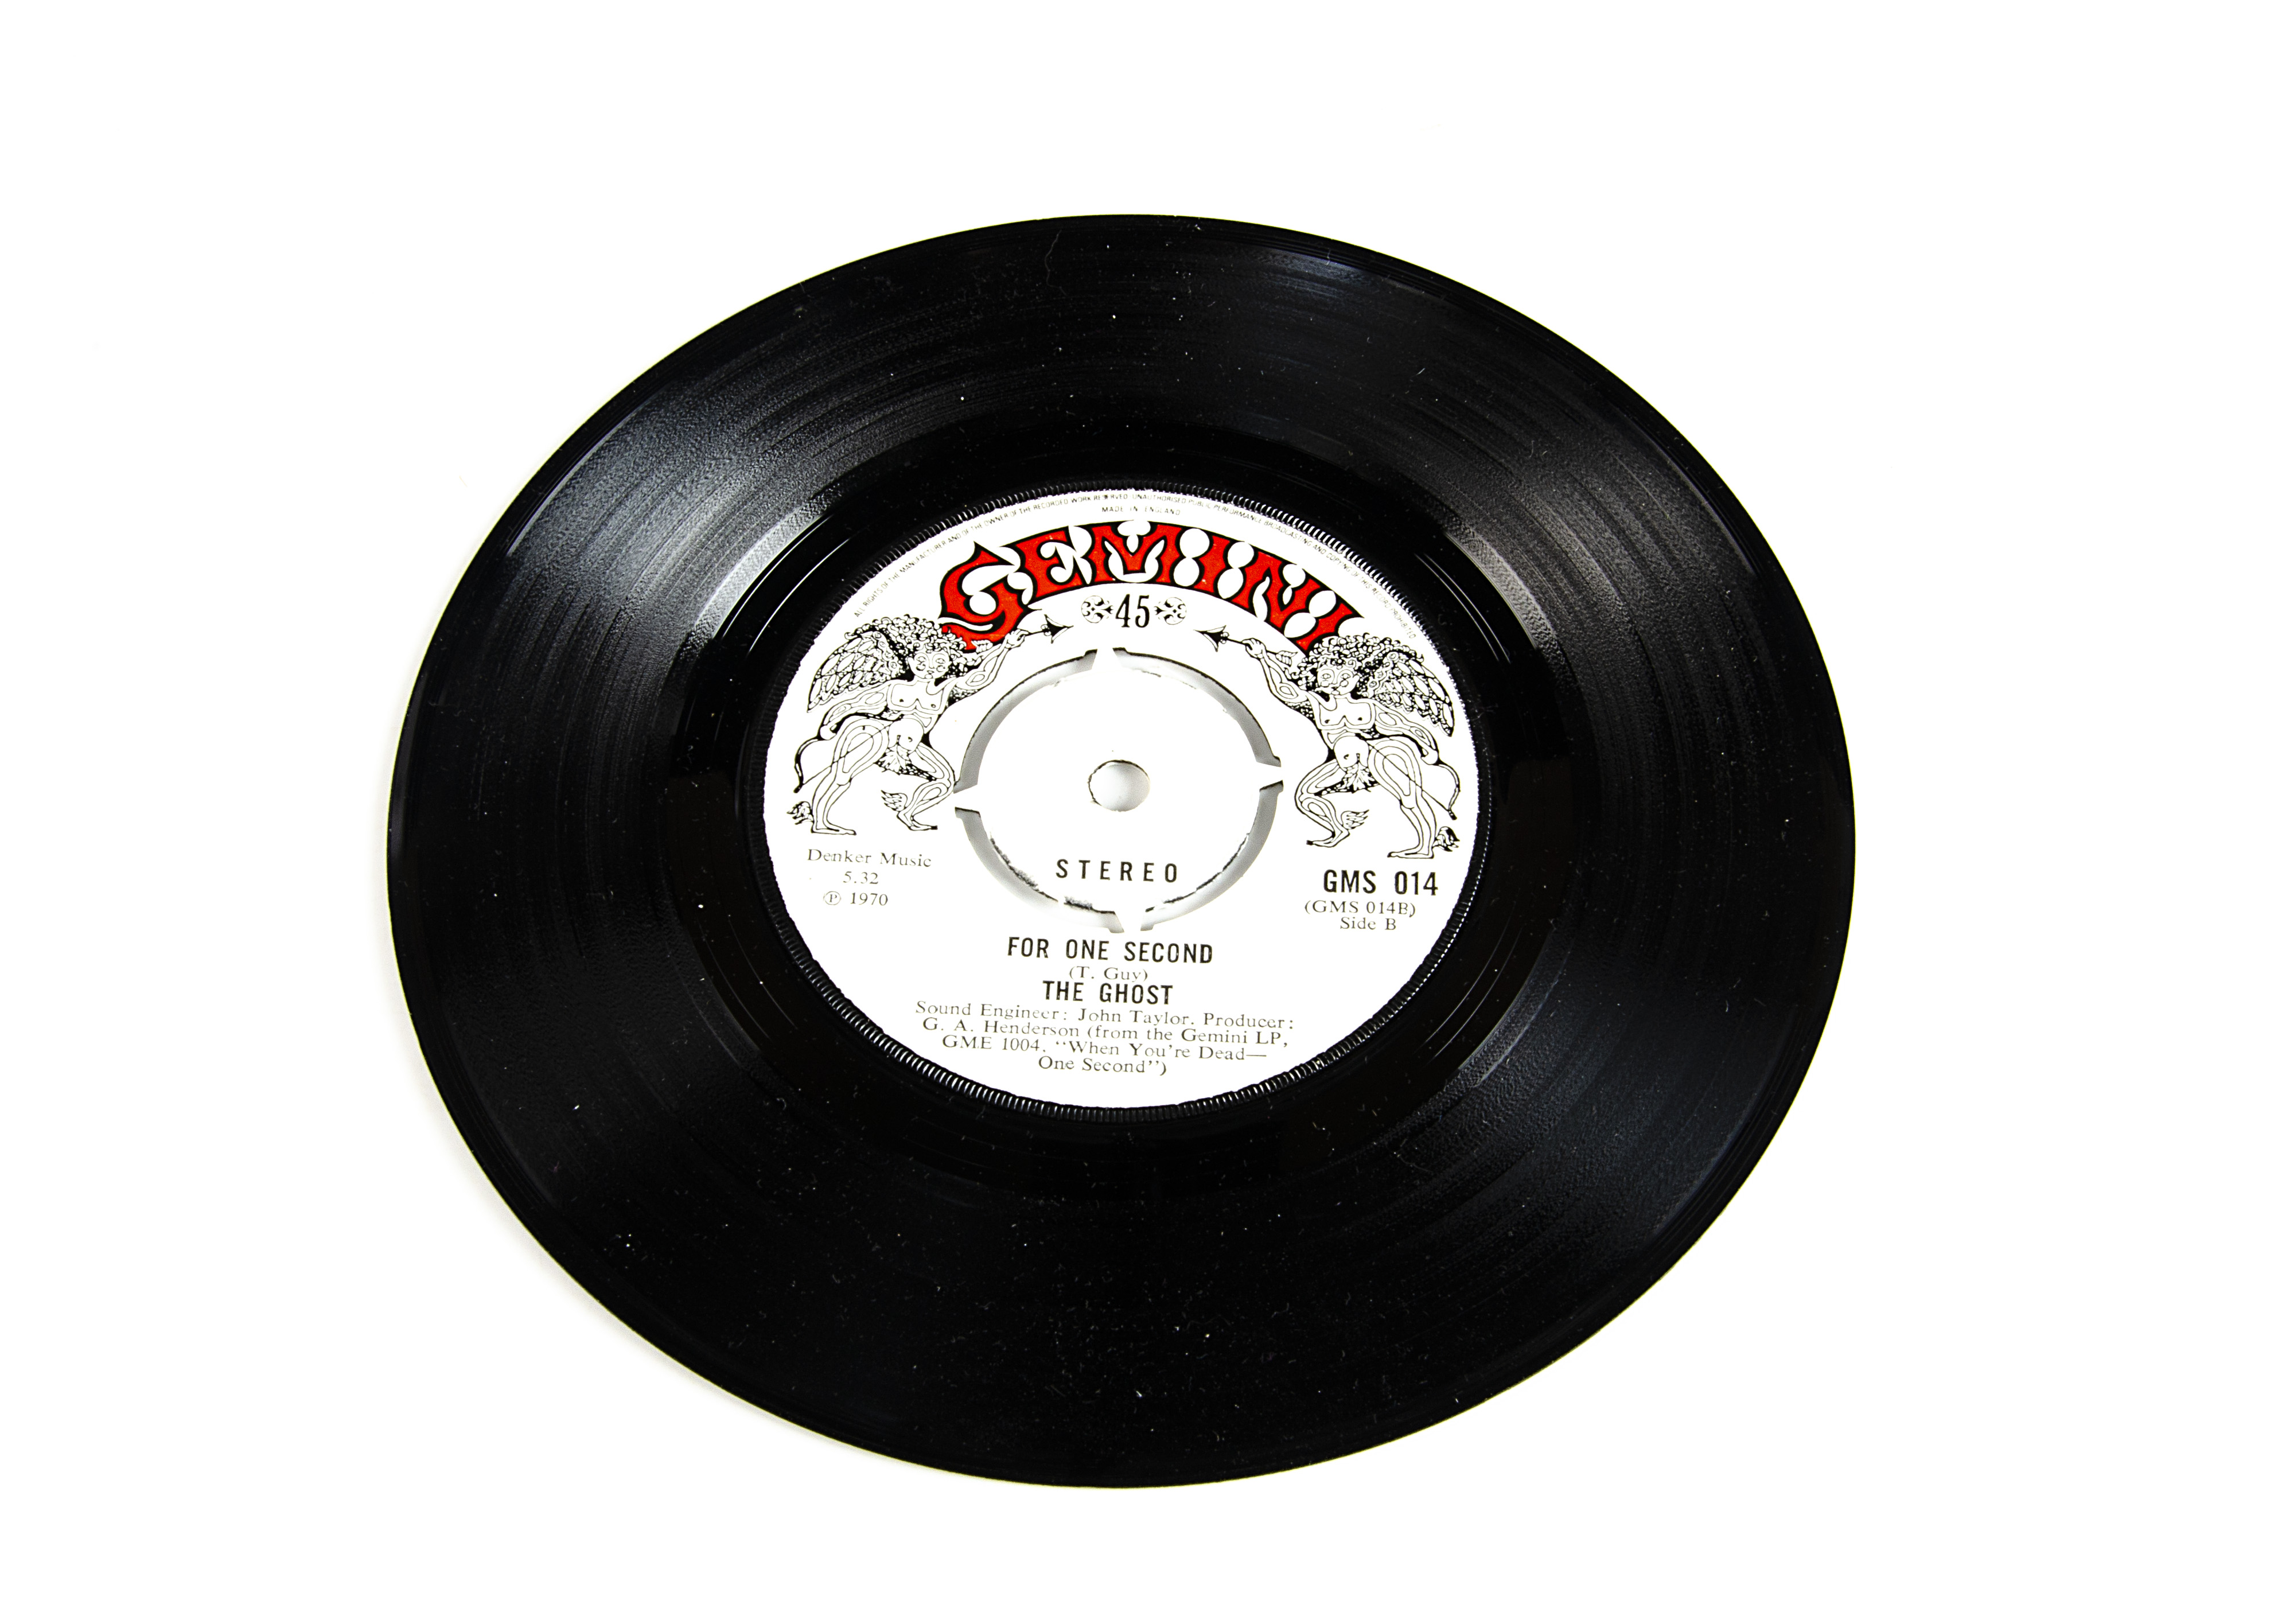 """The Ghost 7"""" Single, I've Got To Get To Know You b/w For One Second 7"""" Single - original UK - Image 2 of 2"""